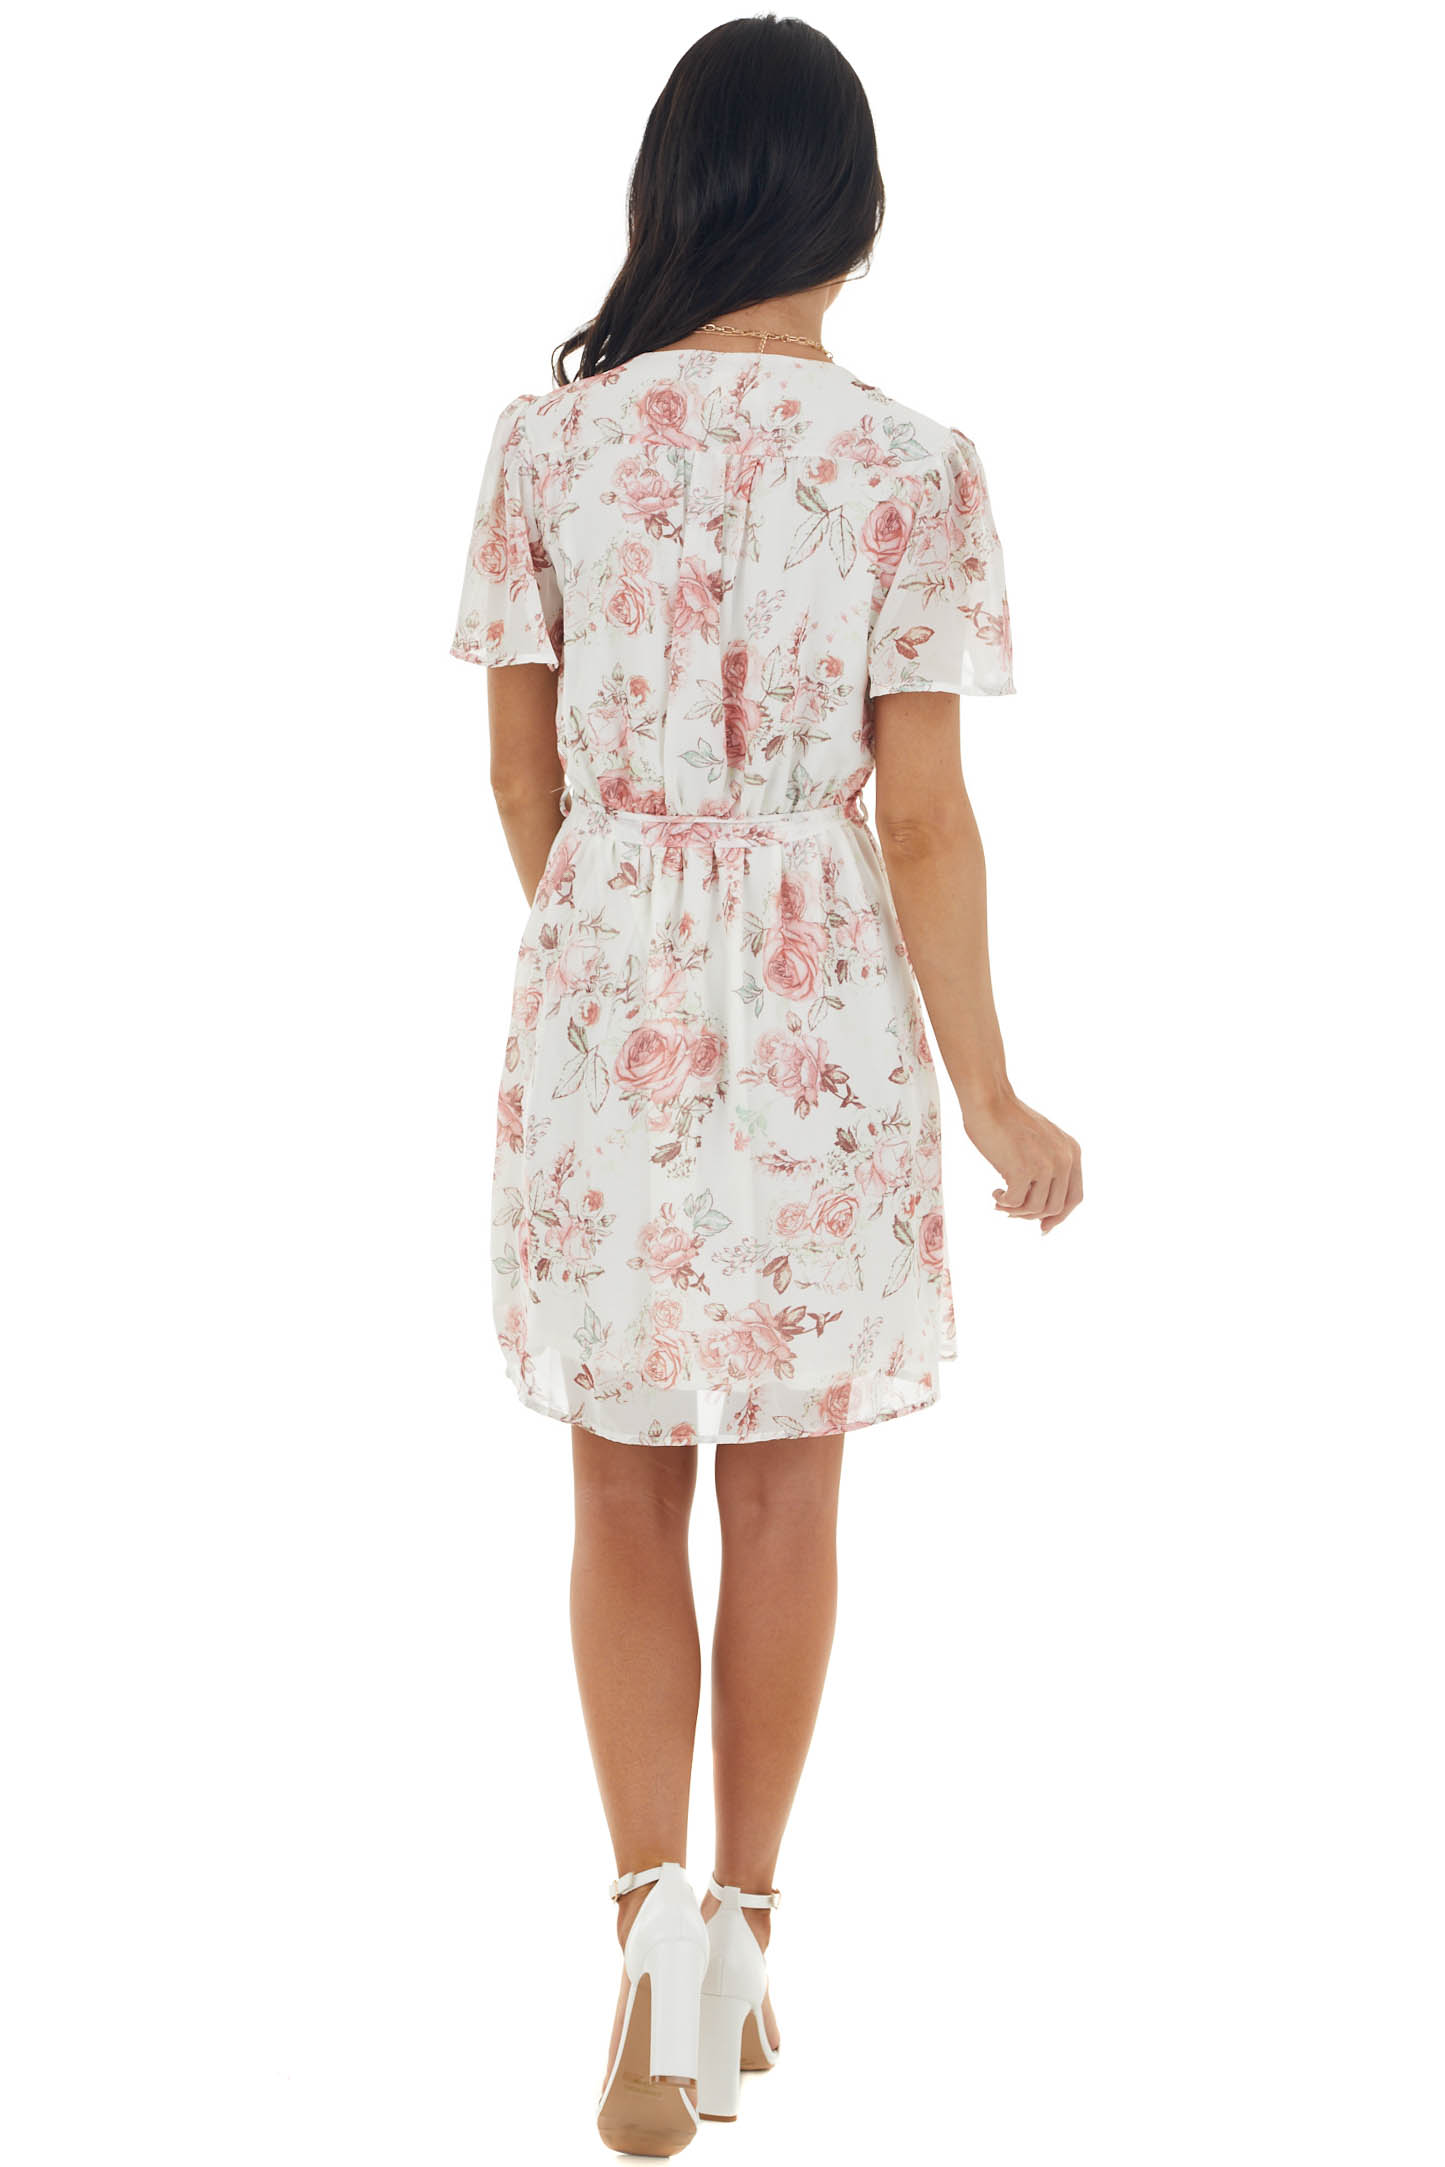 Ivory Floral Surplice Short Dress with Tie